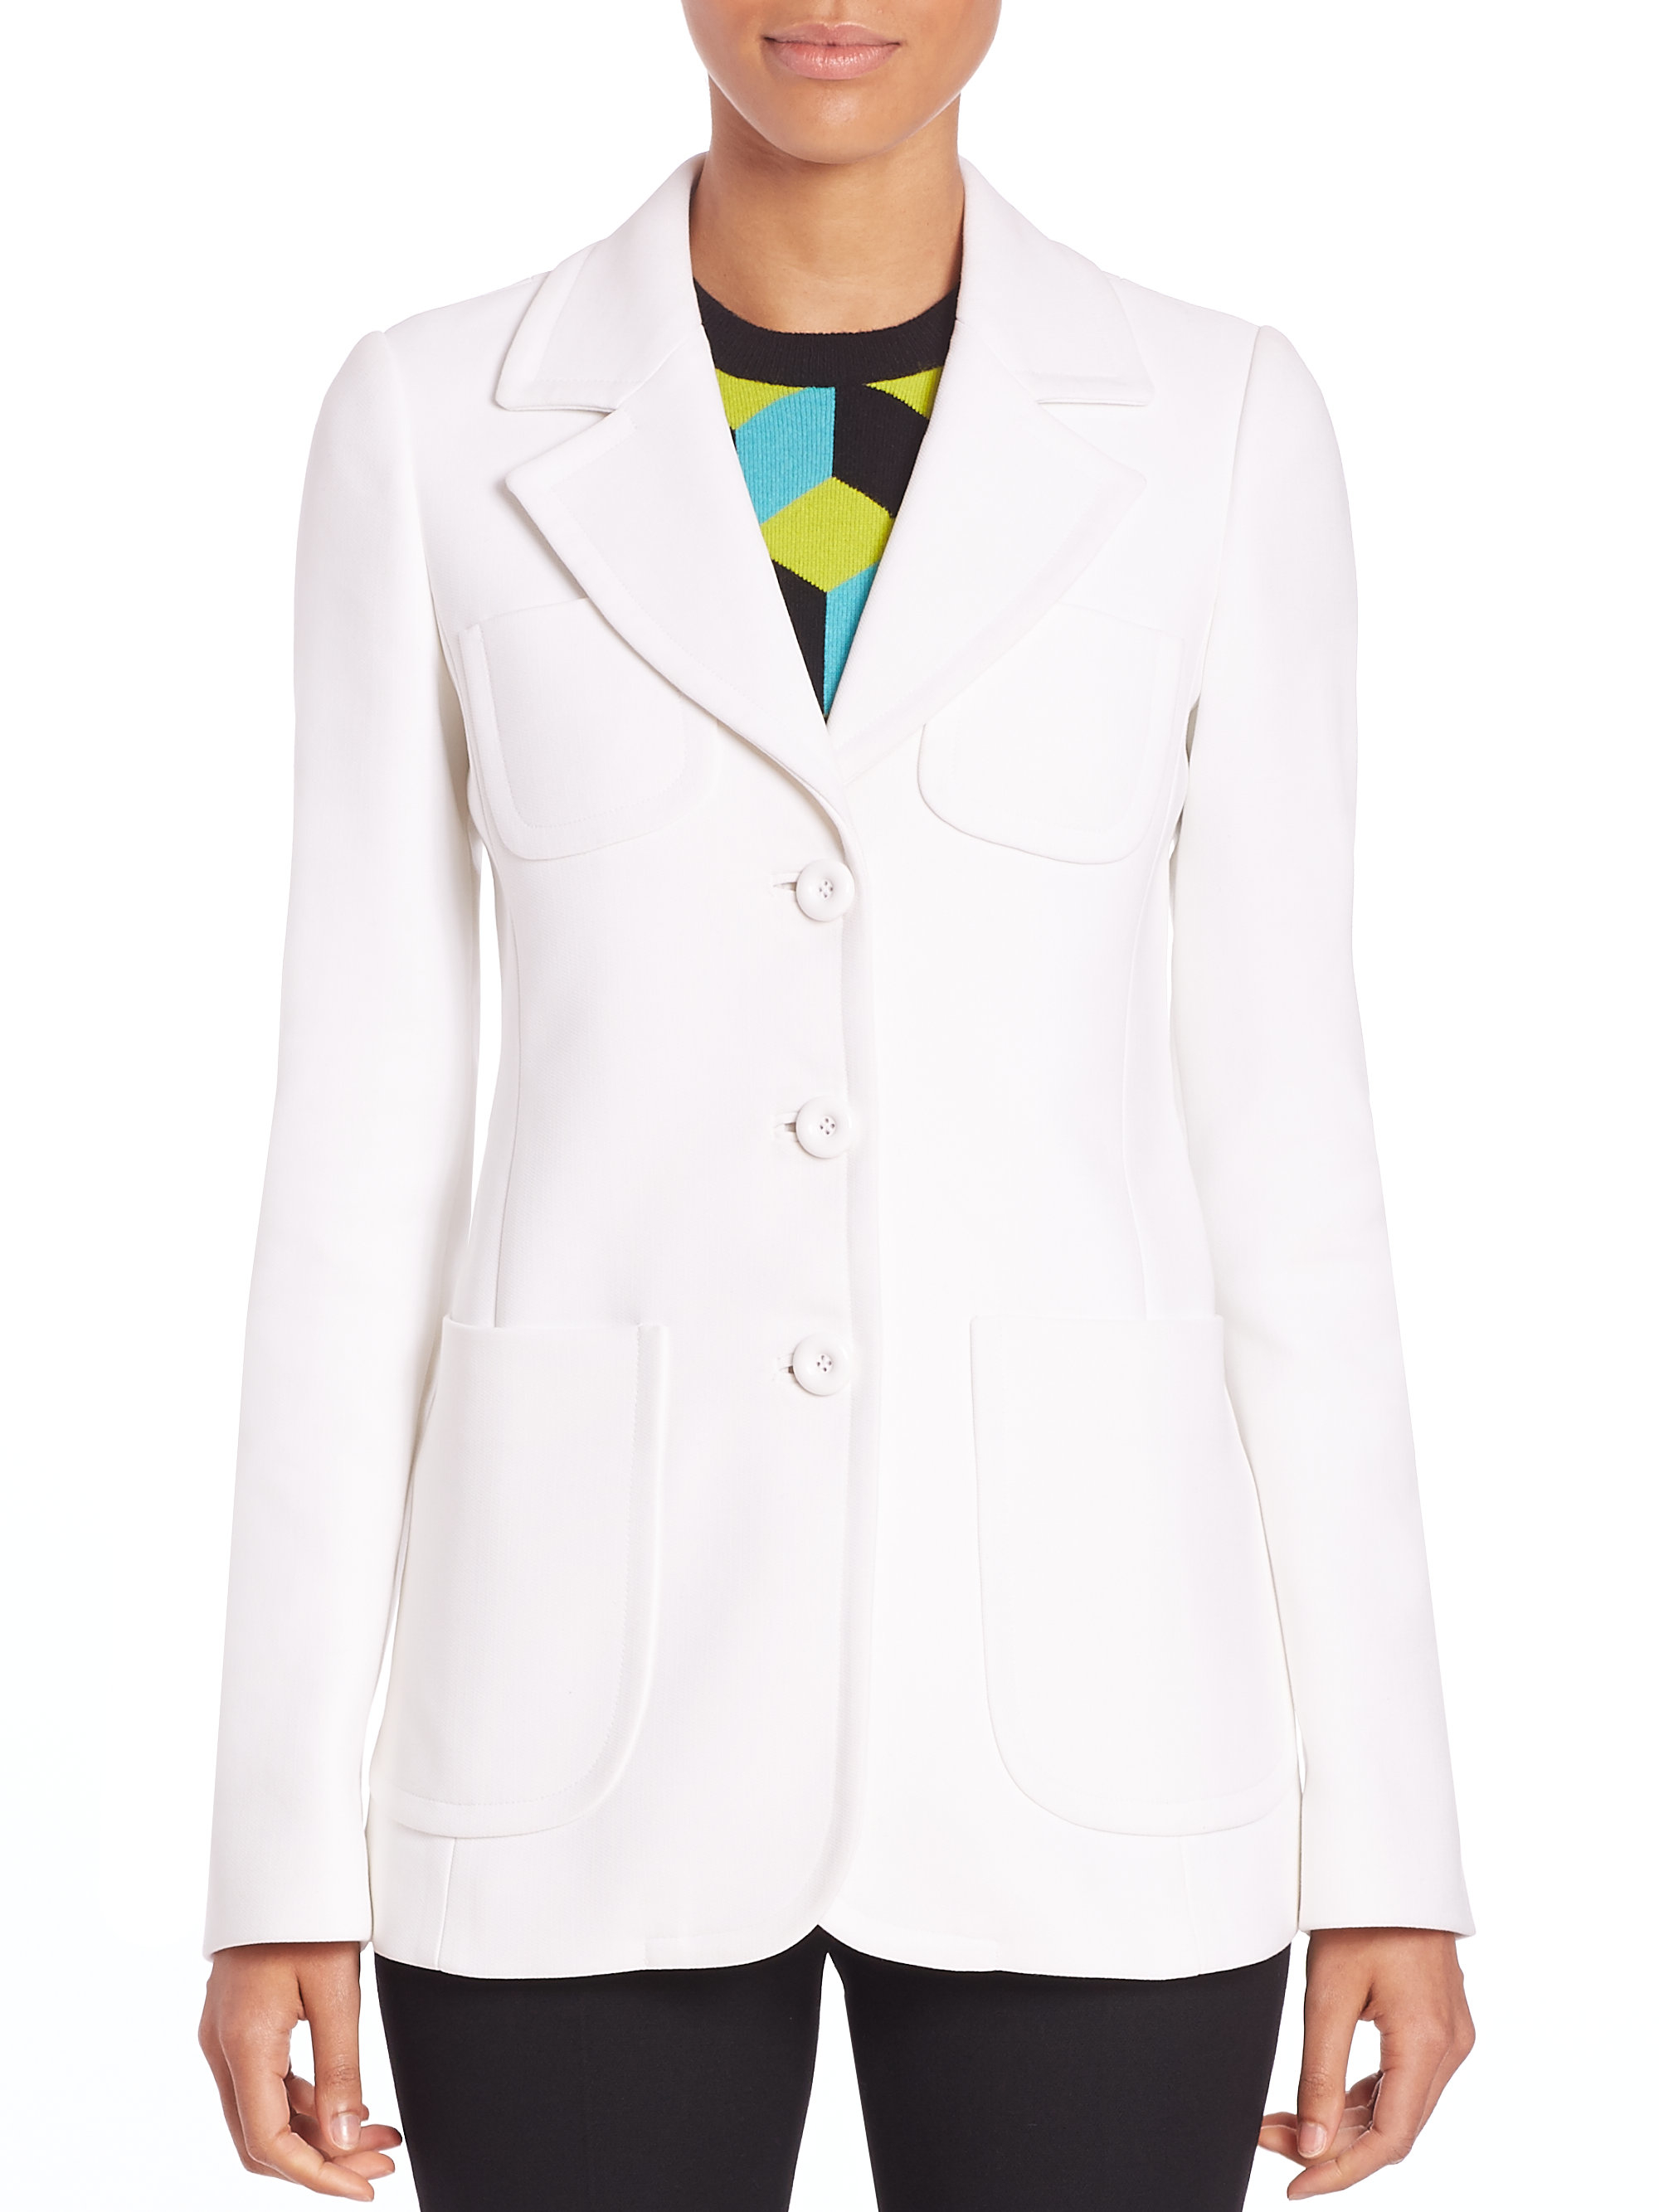 michael kors cotton blazer in white lyst. Black Bedroom Furniture Sets. Home Design Ideas